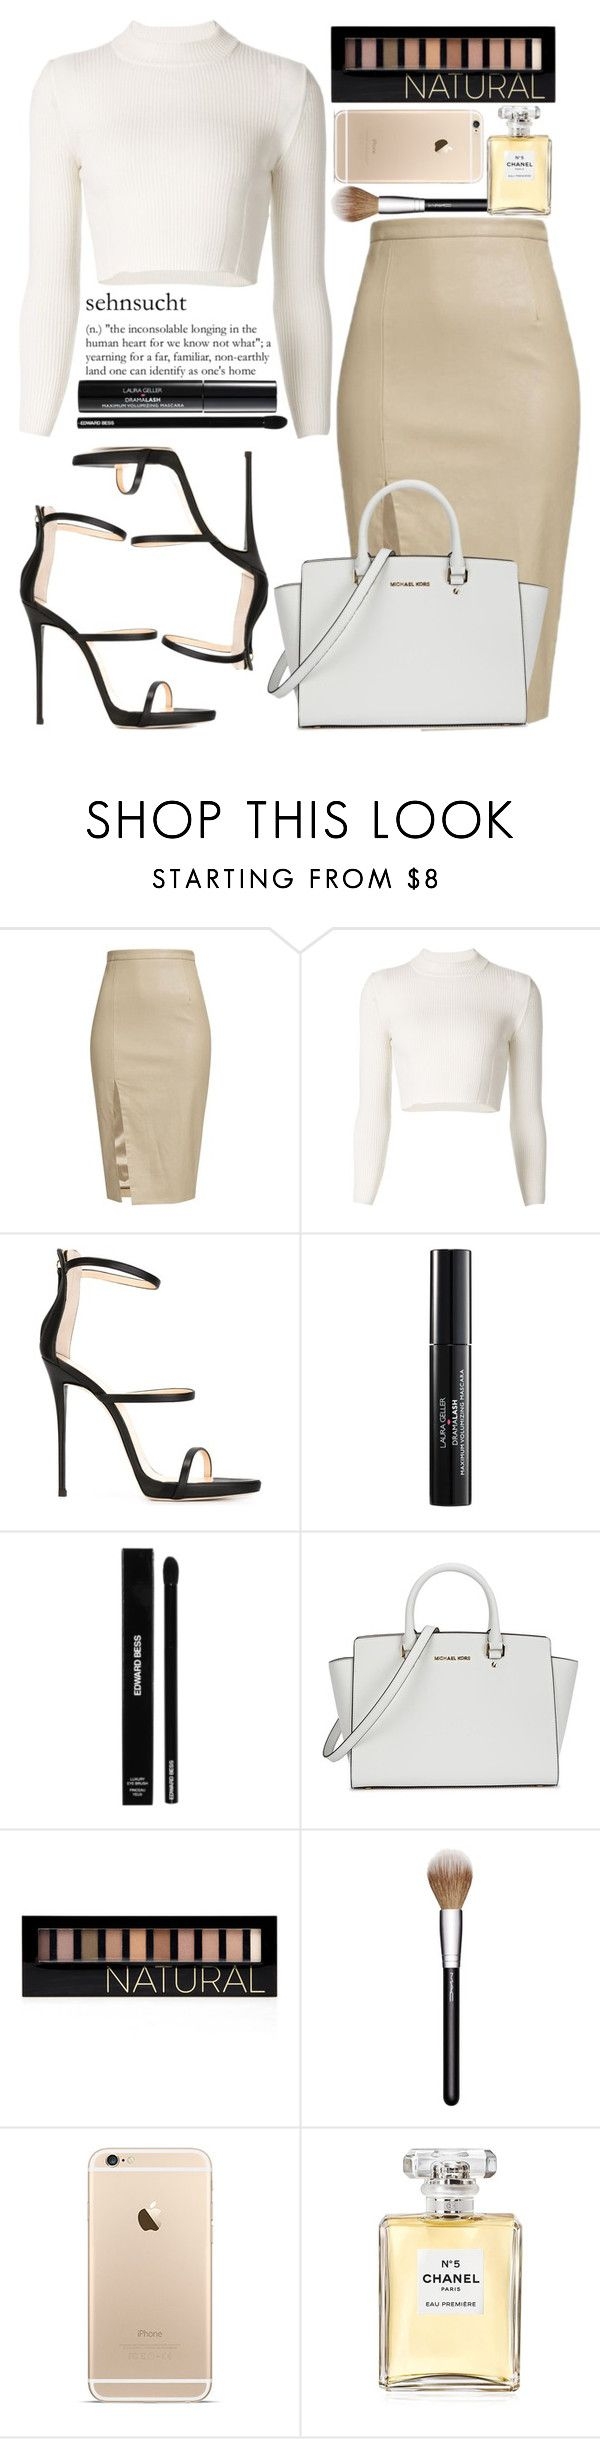 """""""February 10th, 2016"""" by inescanas ❤ liked on Polyvore featuring Maison Margiela, Giuseppe Zanotti, Laura Geller, Edward Bess, Michael Kors, Forever 21, MAC Cosmetics, Chanel, women's clothing and women"""